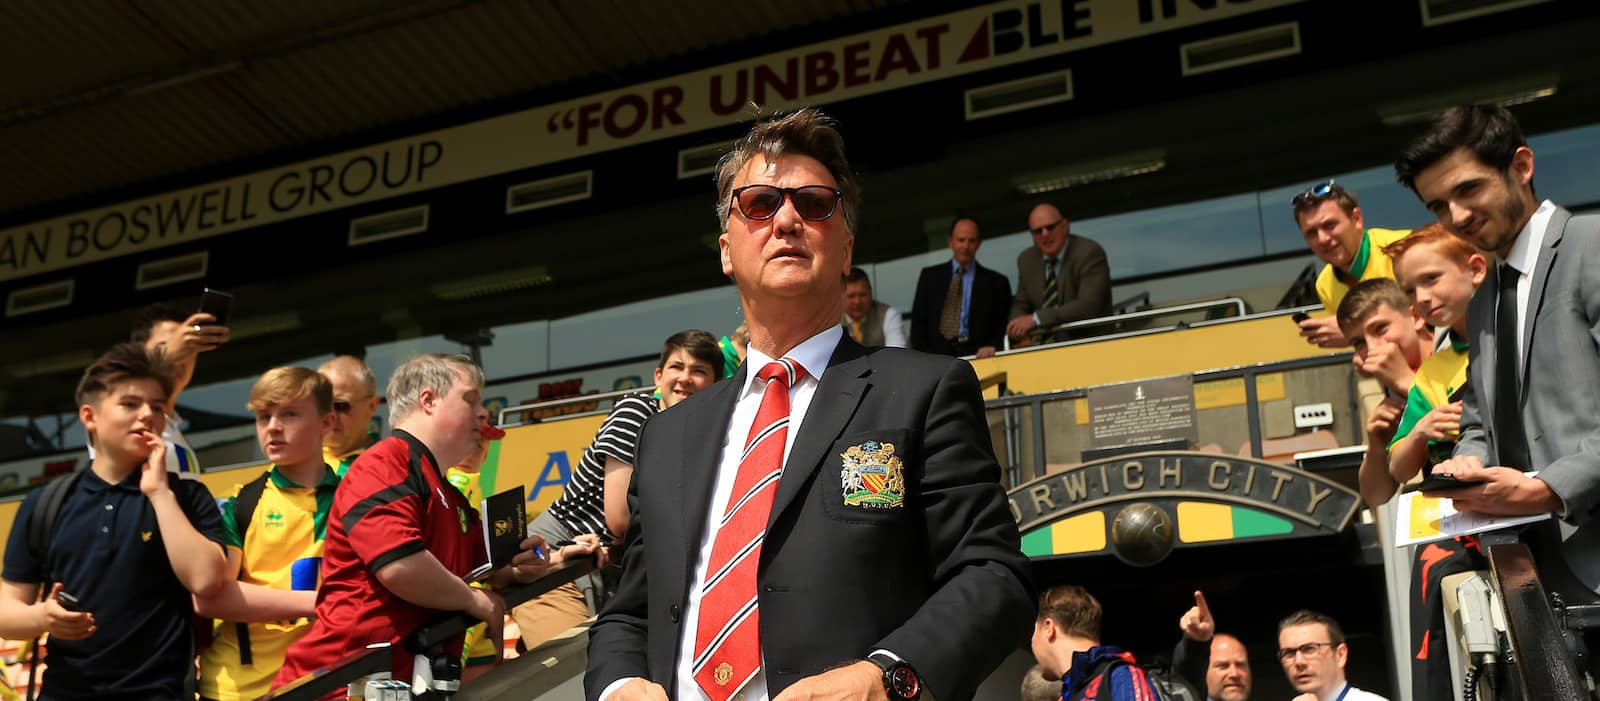 Louis van Gaal slams Manchester United chief executive Ed Woodward for the manner of his sacking